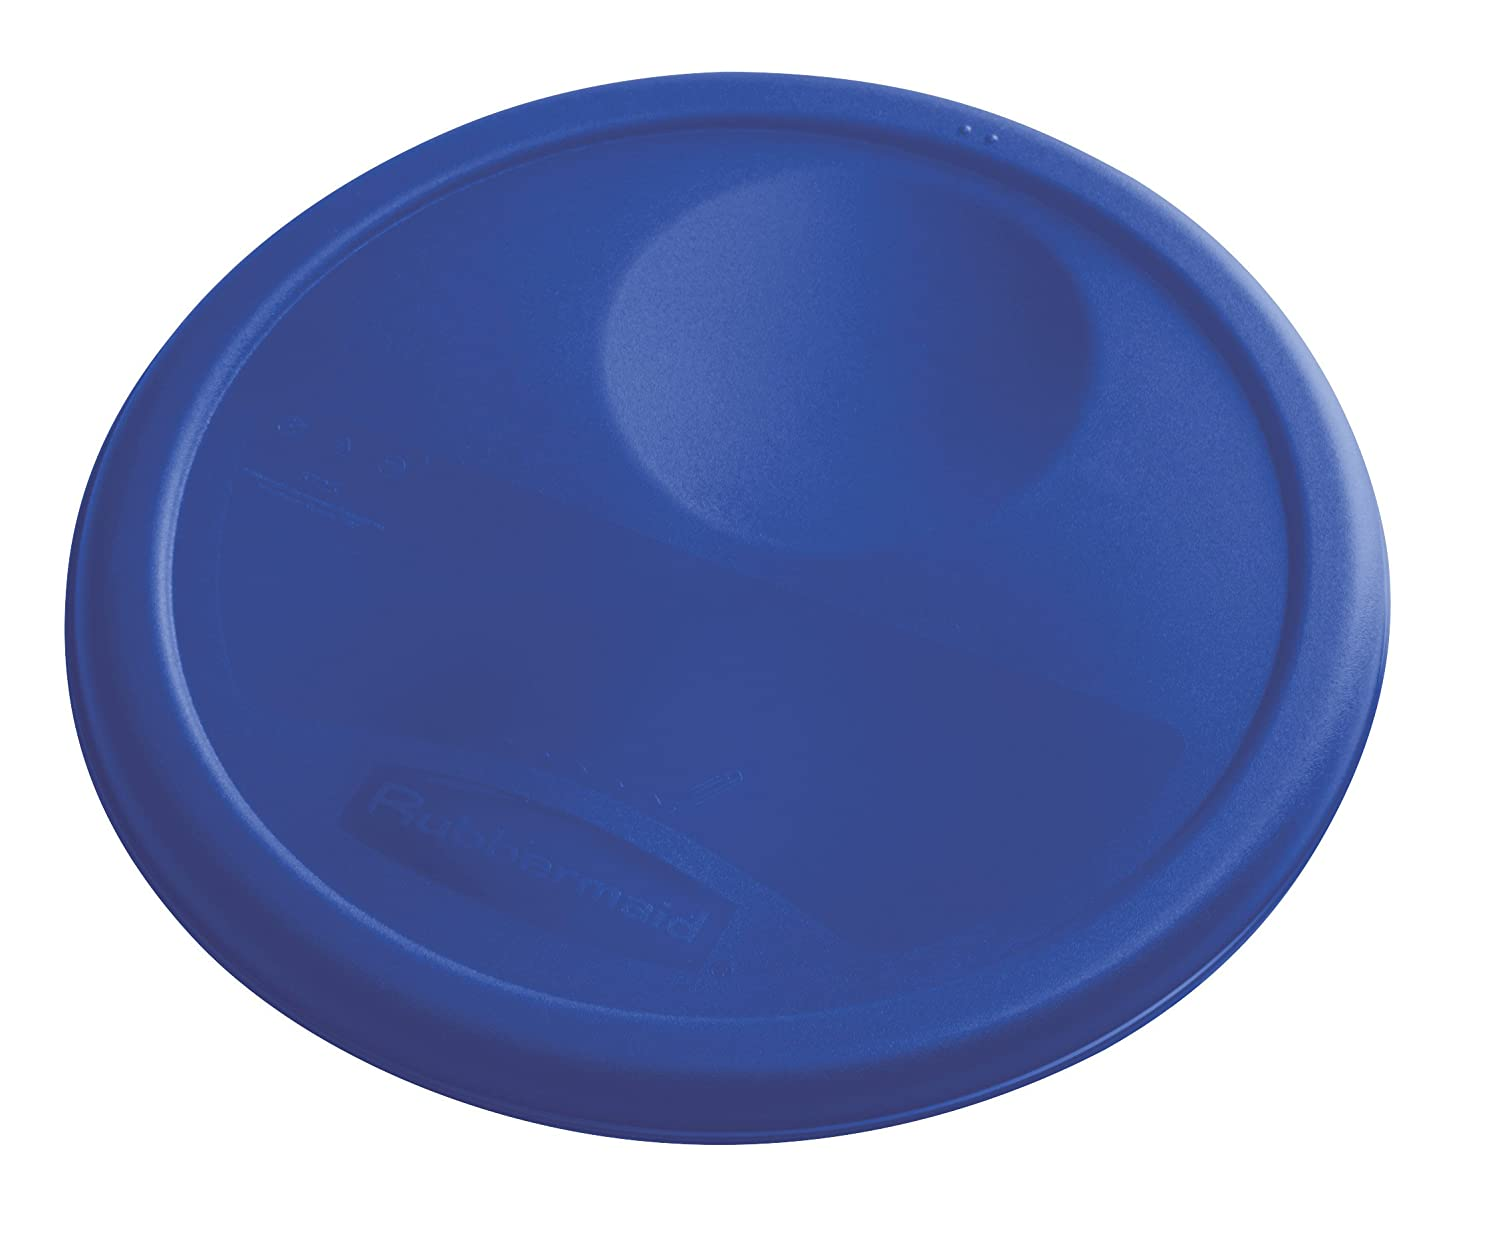 Rubbermaid Commercial Lid (Lid Only) for Round Food Storage Container, Fits 8 Qt. Containers, Blue (1980382)